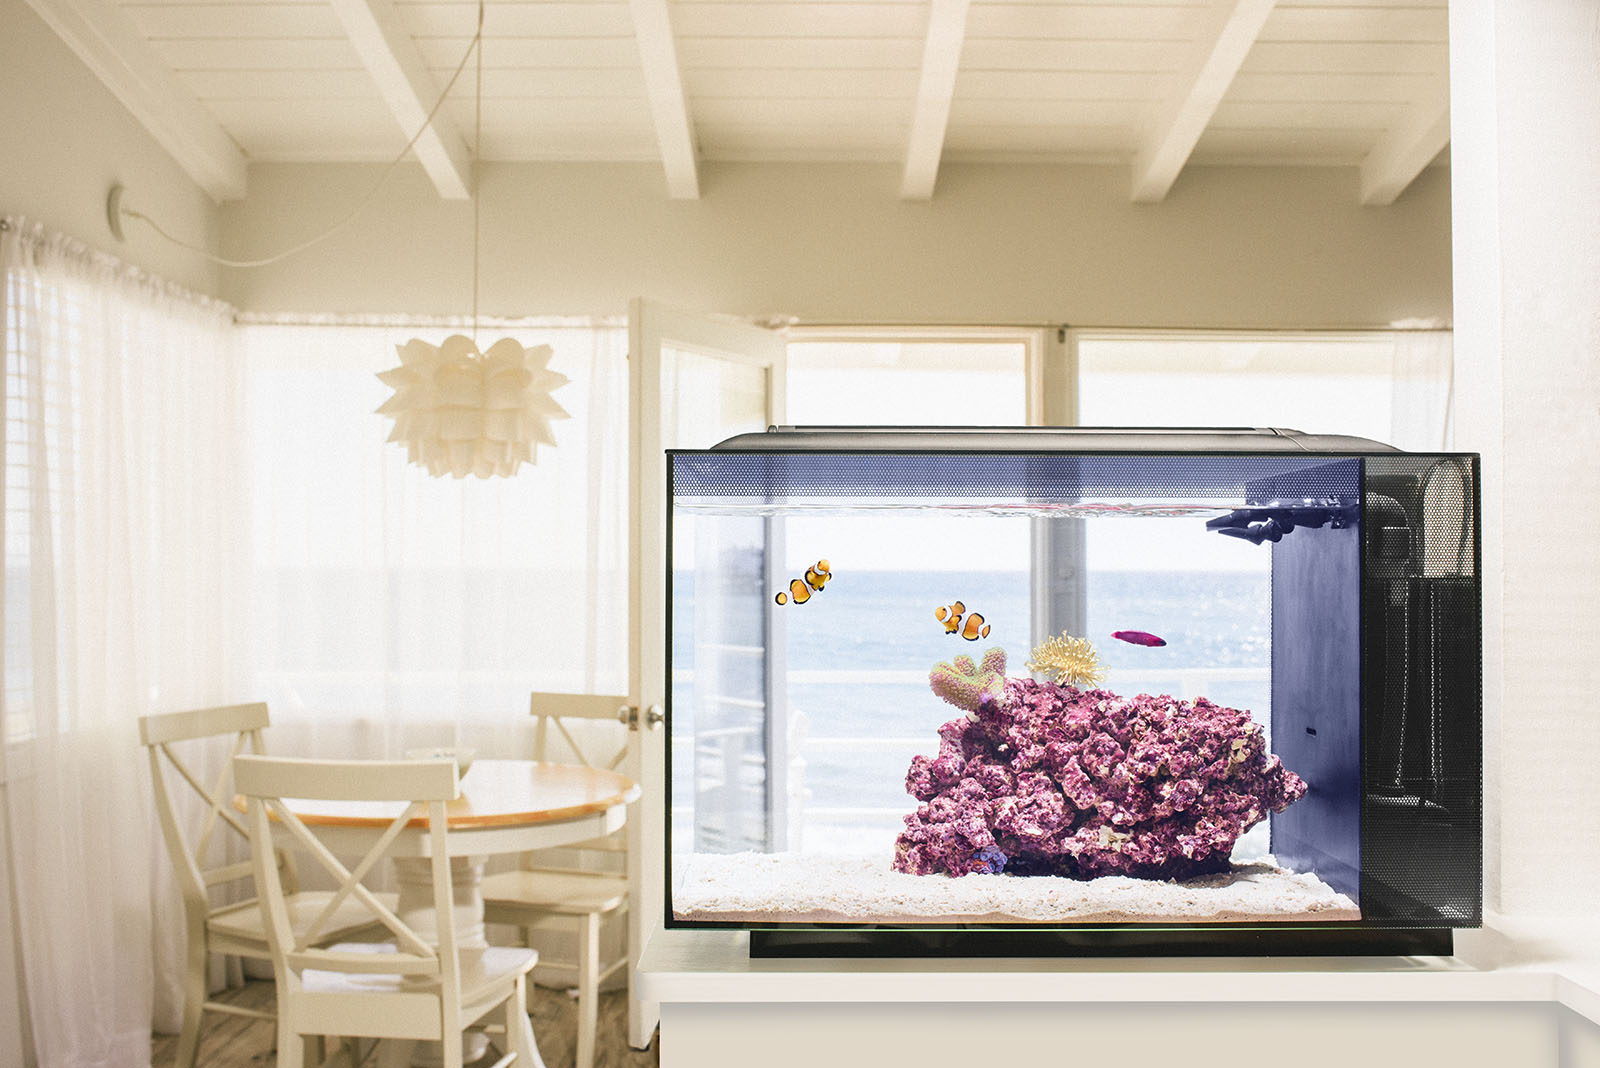 The Biota Aquarium Concept - All in one aquarium, pre-selected livestock, and a recipe for success.